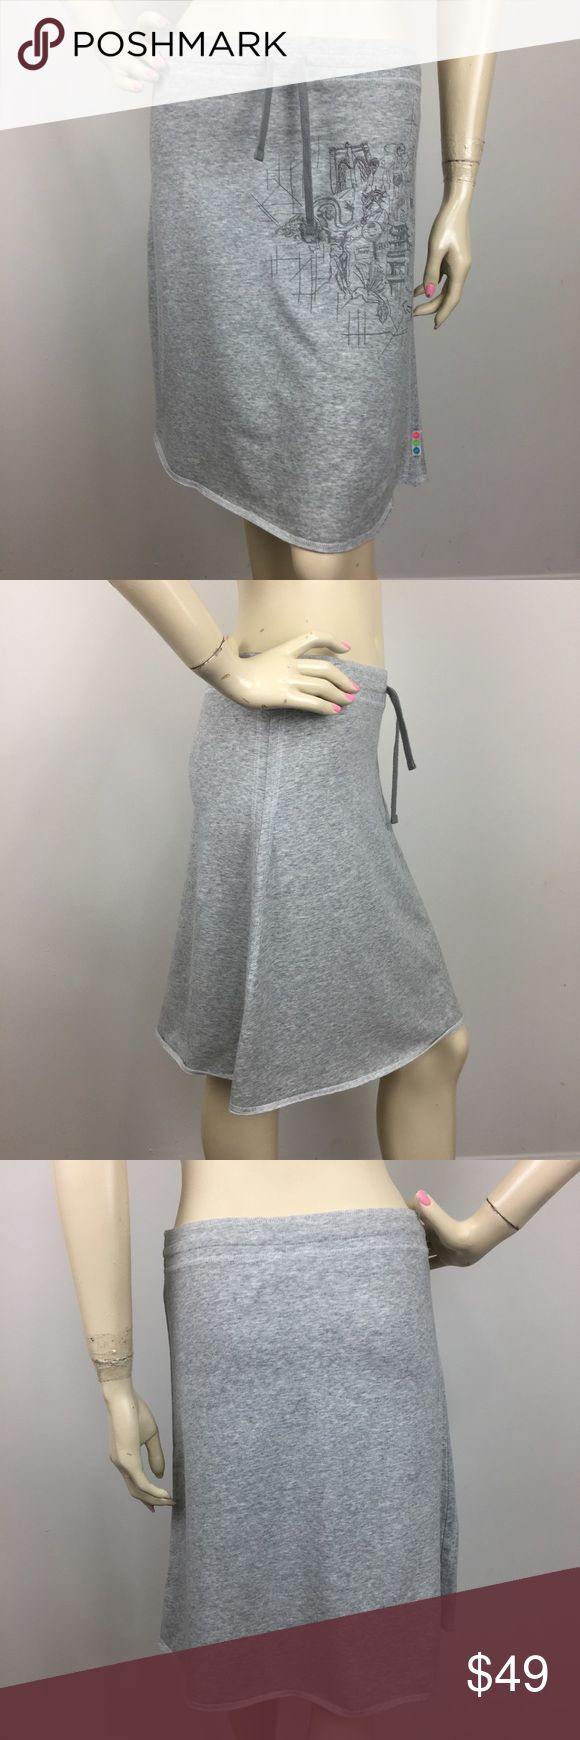 Nike Running Marathon Map Grey Skirt XS 0-2 RARE! CONDITION: New without tags MATERIAL: 95% Cotton 5% Spandex  STYLE# 215923-050 (Please note that the measurements are approximate) ALL MEASUREMENTS ARE TAKEN WITH GARMENT LYING FLAT: WAIST: HIPS: LENGHT: Nike Skirts A-Line or Full